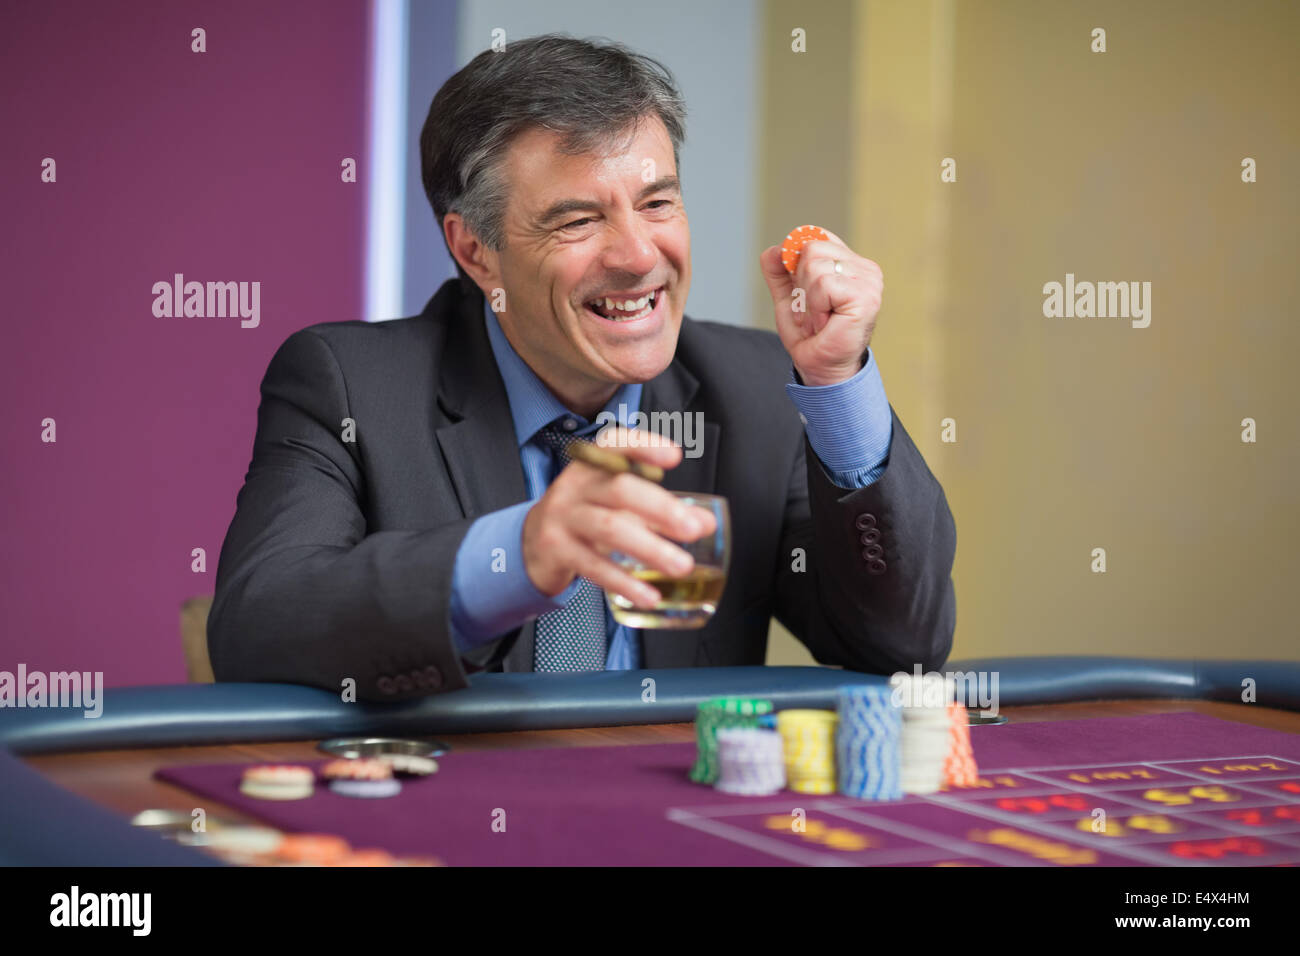 Man winning at roulette table - Stock Image